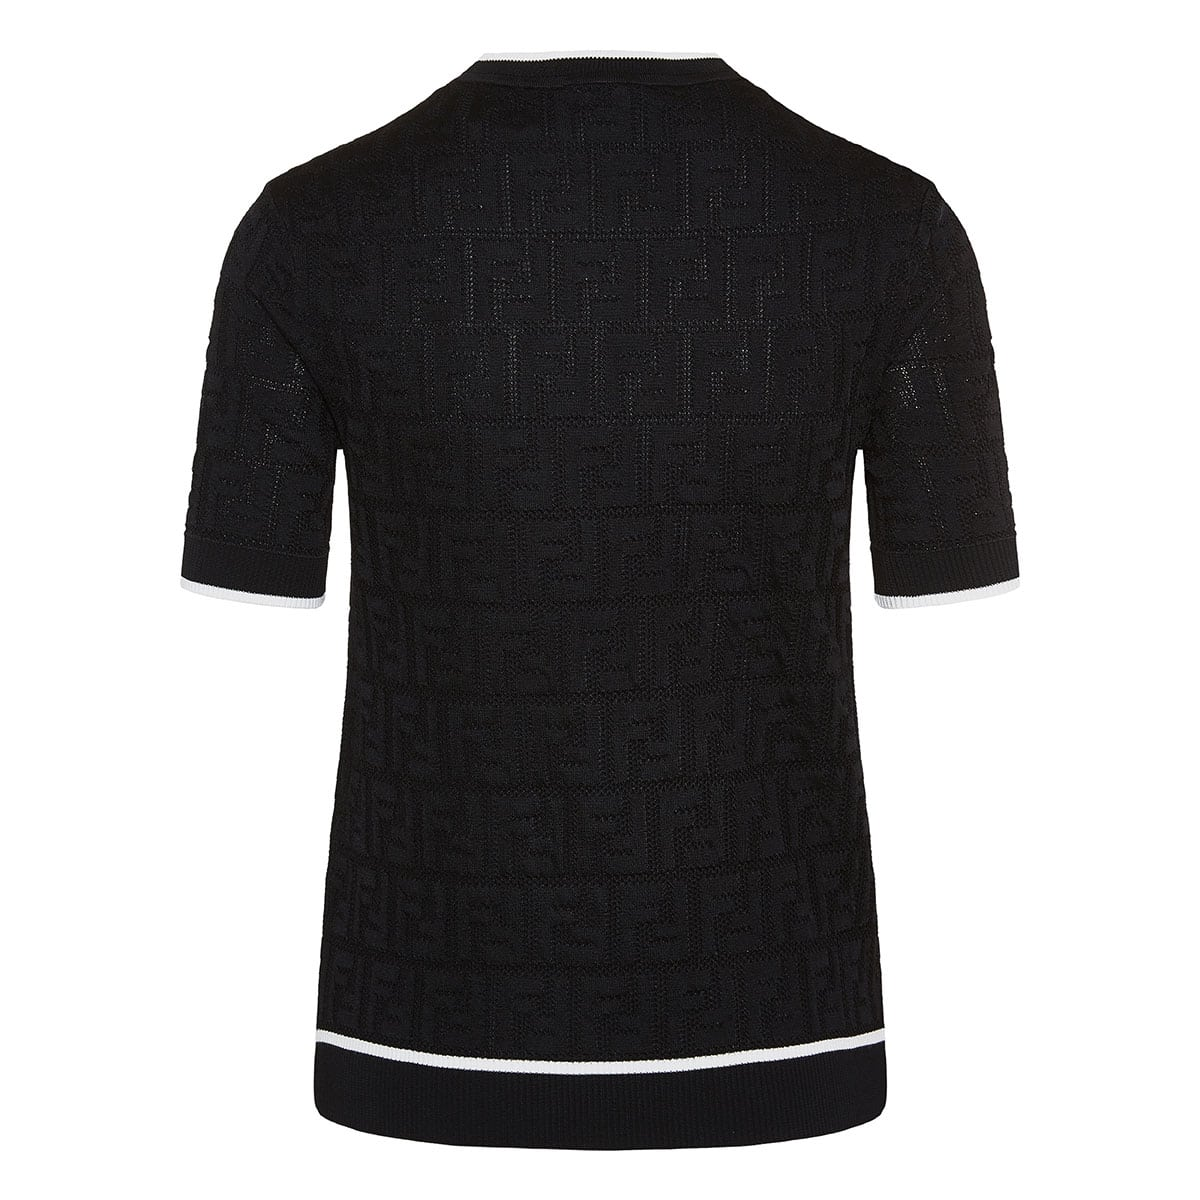 FF short-sleeved jacquard sweater